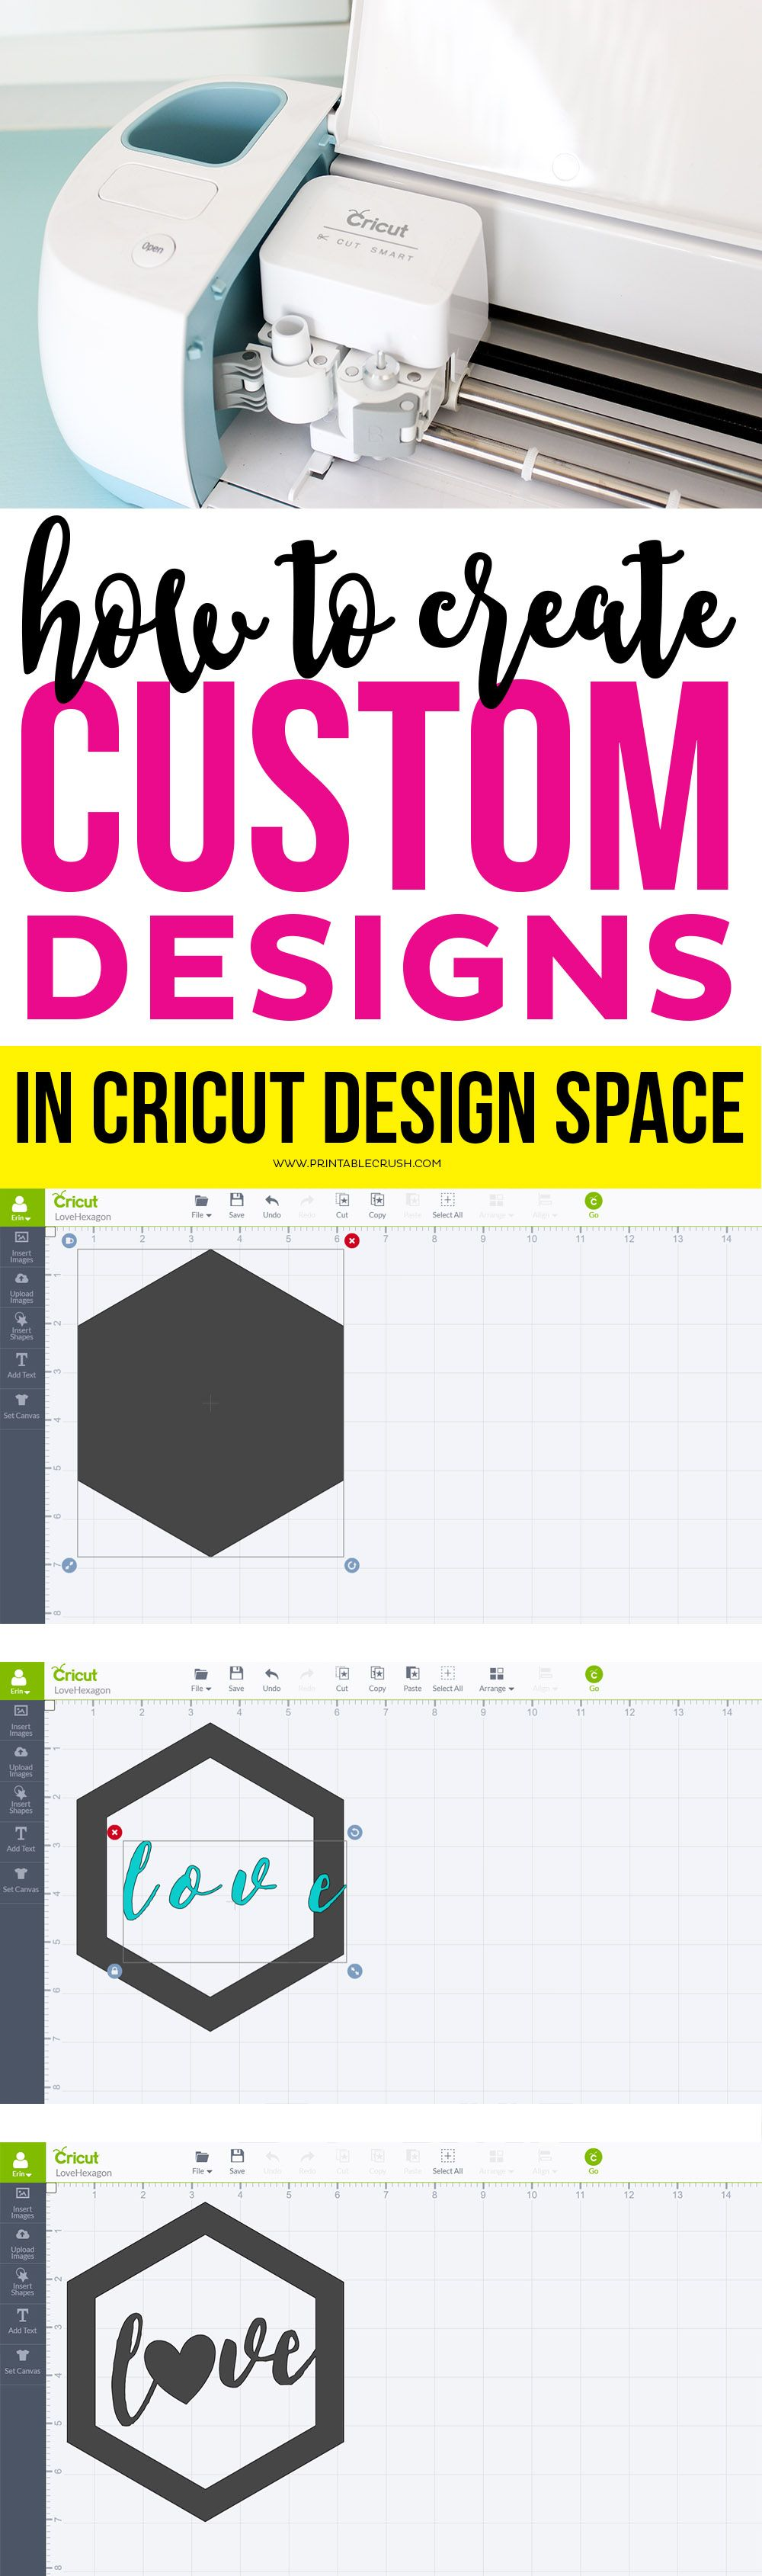 Use This Tutorial To Create Custom Designs In Cricut Design Space - Custom vinyl decal application instructions pdfcare and instructions es signs